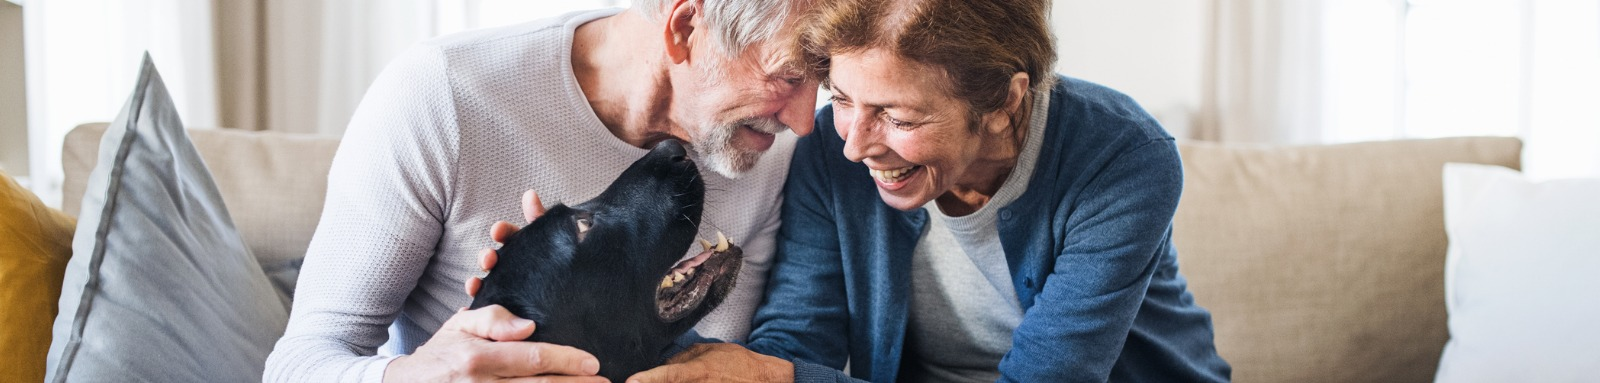 Older couple on couch patting dog